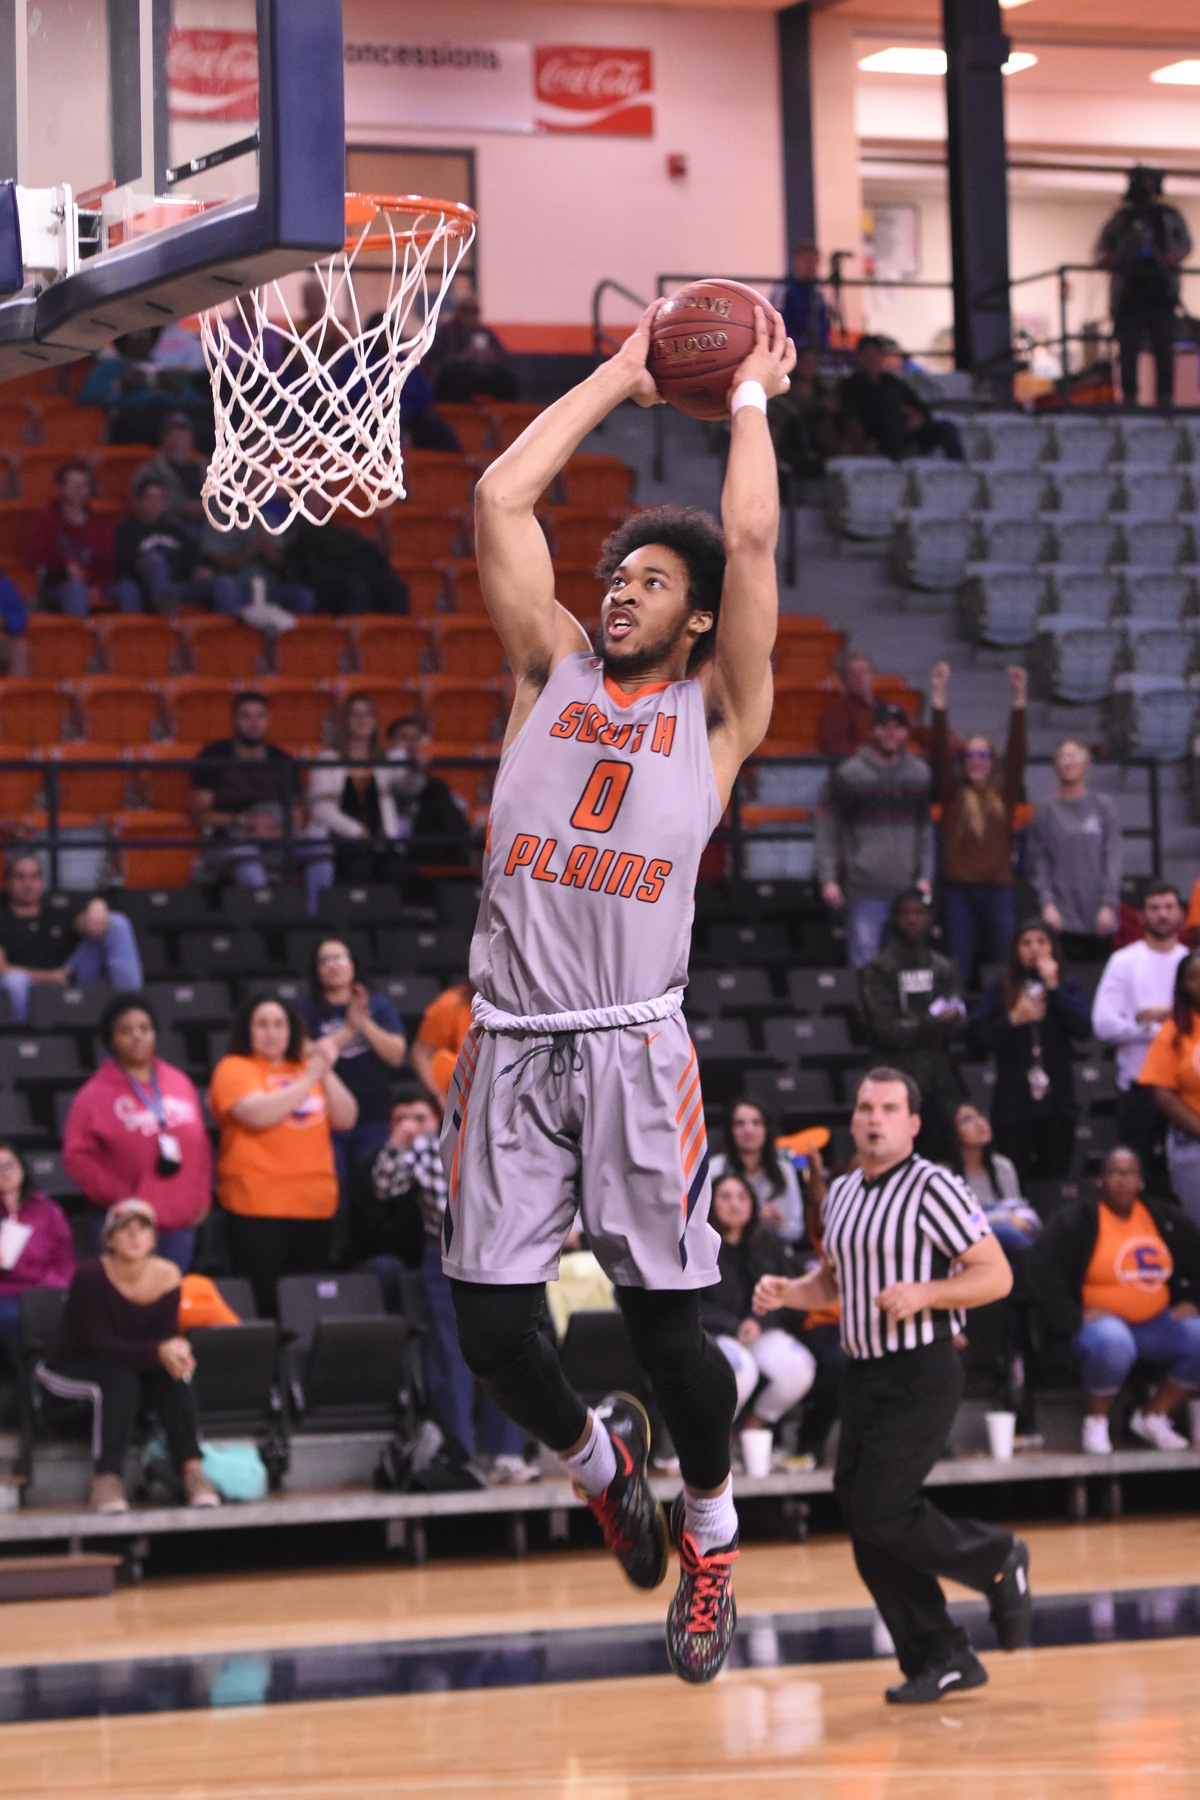 Corprew scores 27 as Texans overcome late deficit to oust Western Texas 78-76 Thursday at the Texan Dome